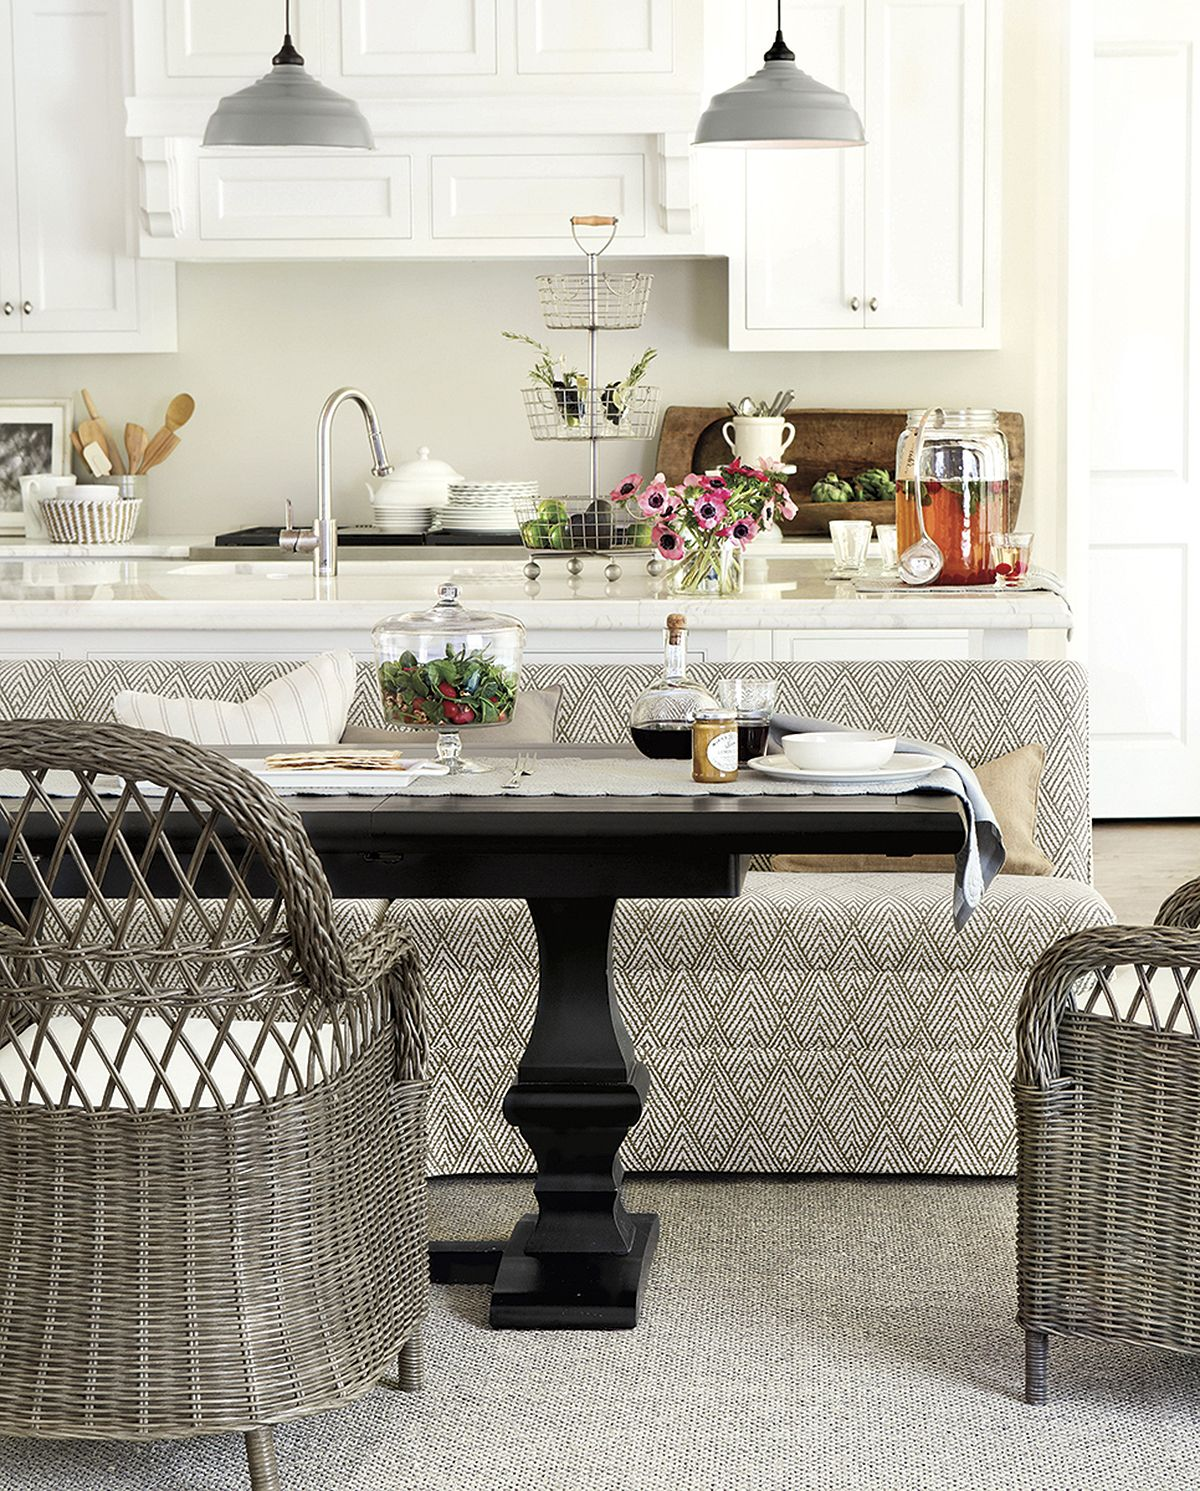 Breakfast Banquette From Ballard Designs. Kitchen BenchesKitchen Island ...